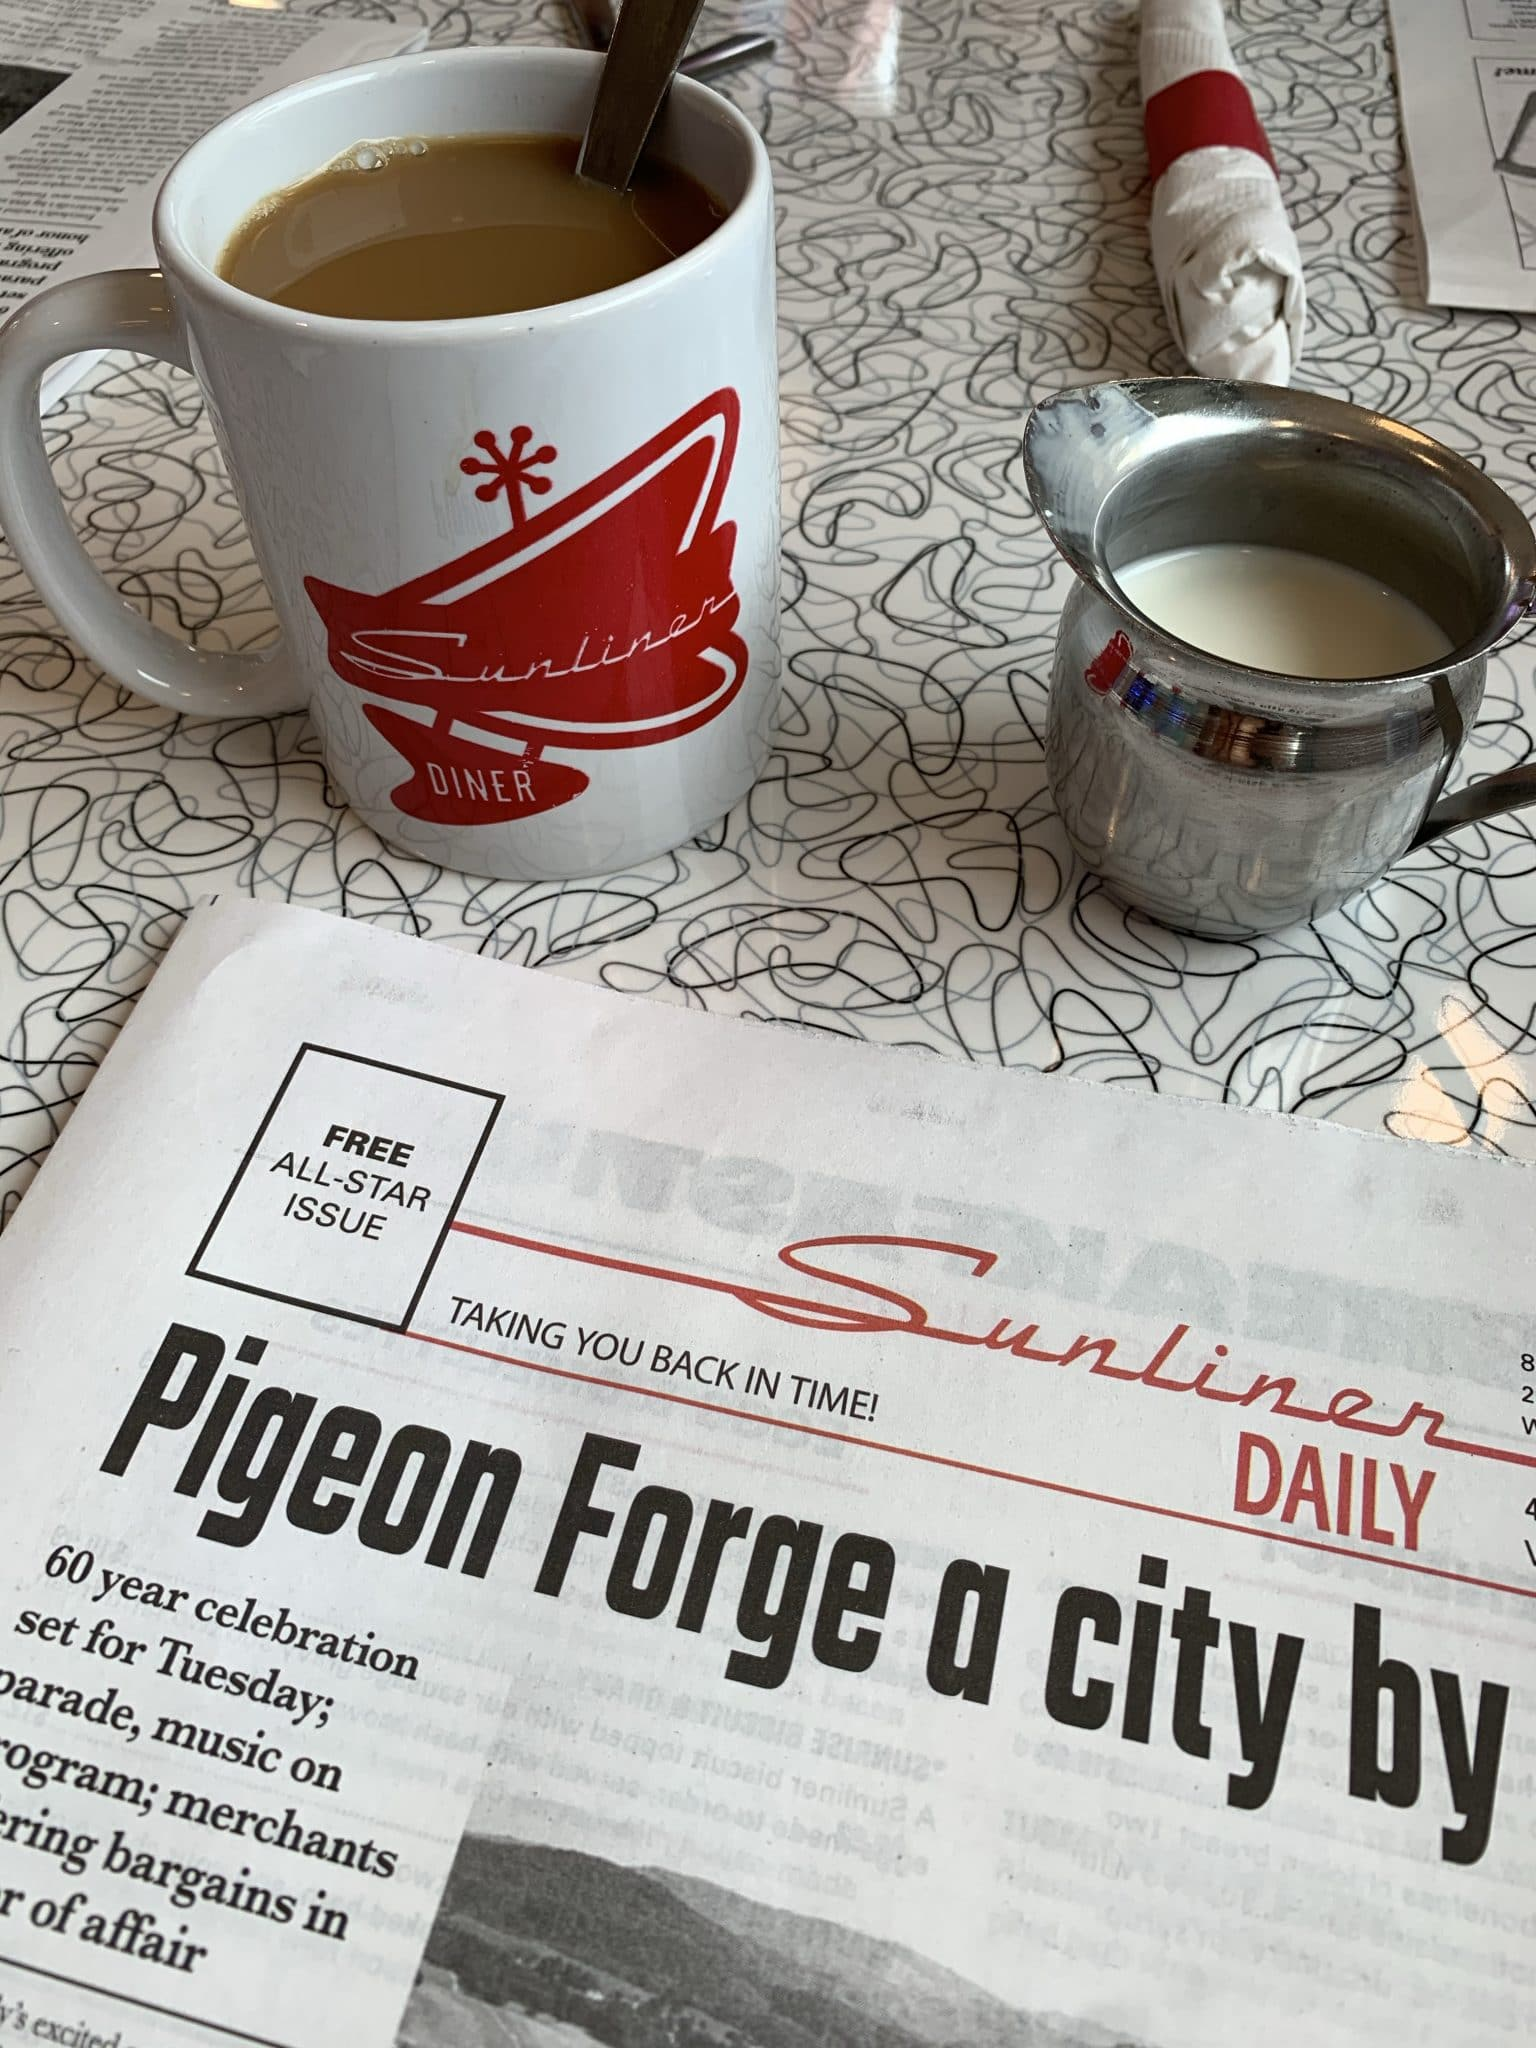 Sunliner Diner, Pigeon Forge Family Travel Guide, Stilettos and Diapers